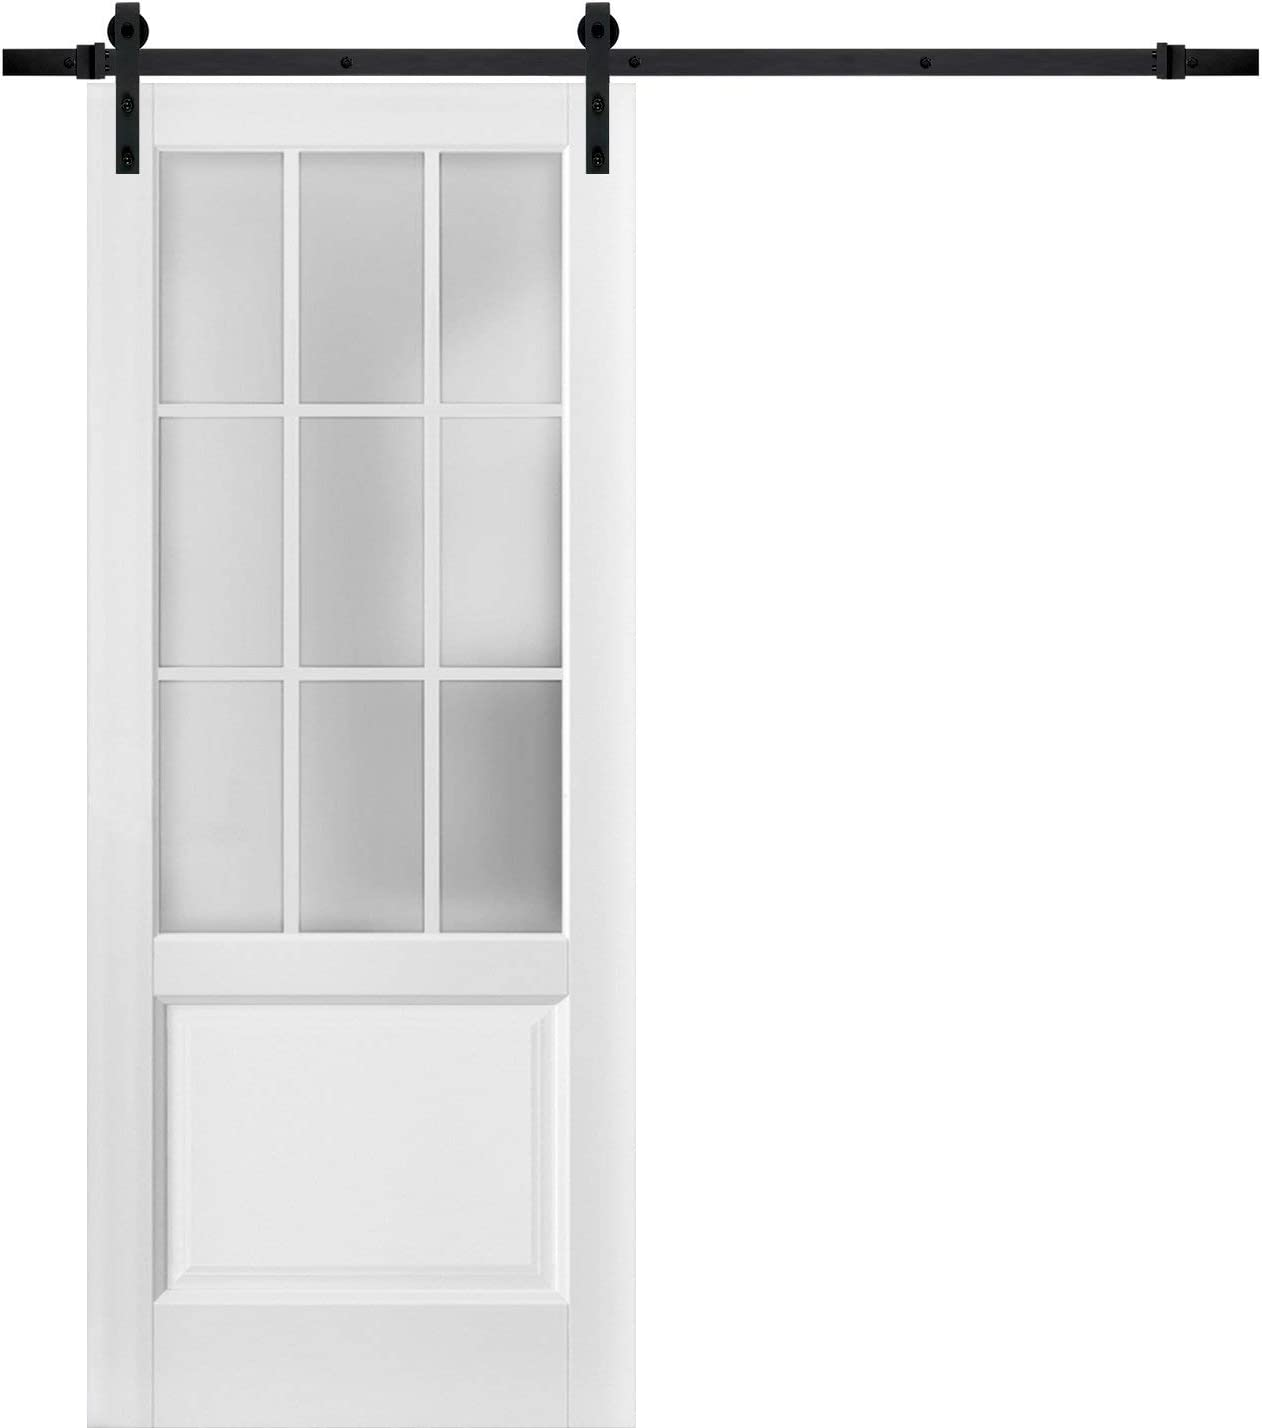 Sturdy Barn Chicago Mall Door Branded goods 24 x 84 inches Lites Glass Frosted Felicia 9